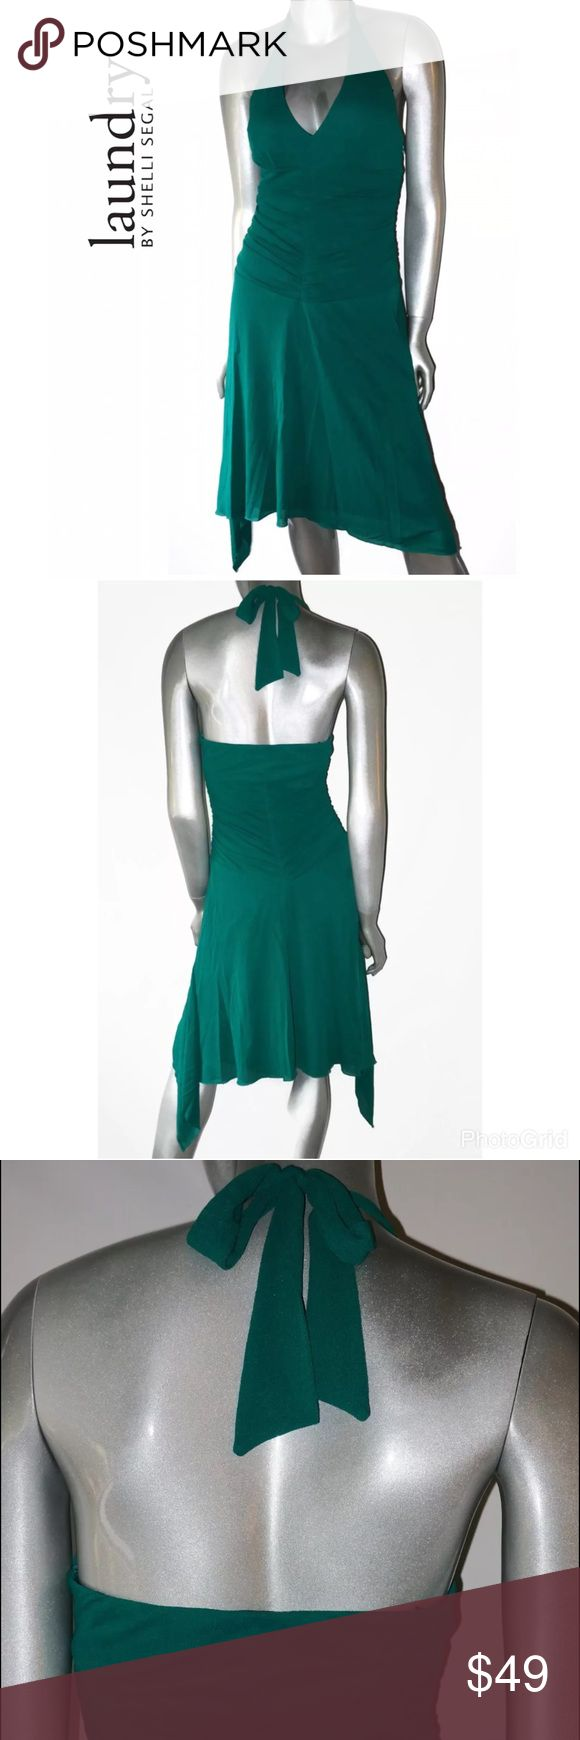 "Laundry Shelli Segal Green Halter Cocktail Dress Laundry By Shelli Segal Green Halter Cocktail Dress. Womens Sz: 4  Measurements Lying Flat: Armpit to armpit- 16"" Length- 30""  Condition: Nice shape, super sexy. Pre-owned.  ALL ITEMS COME FROM A SMOKE-FREE HOME Laundry by Shelli Segal Dresses Asymmetrical"